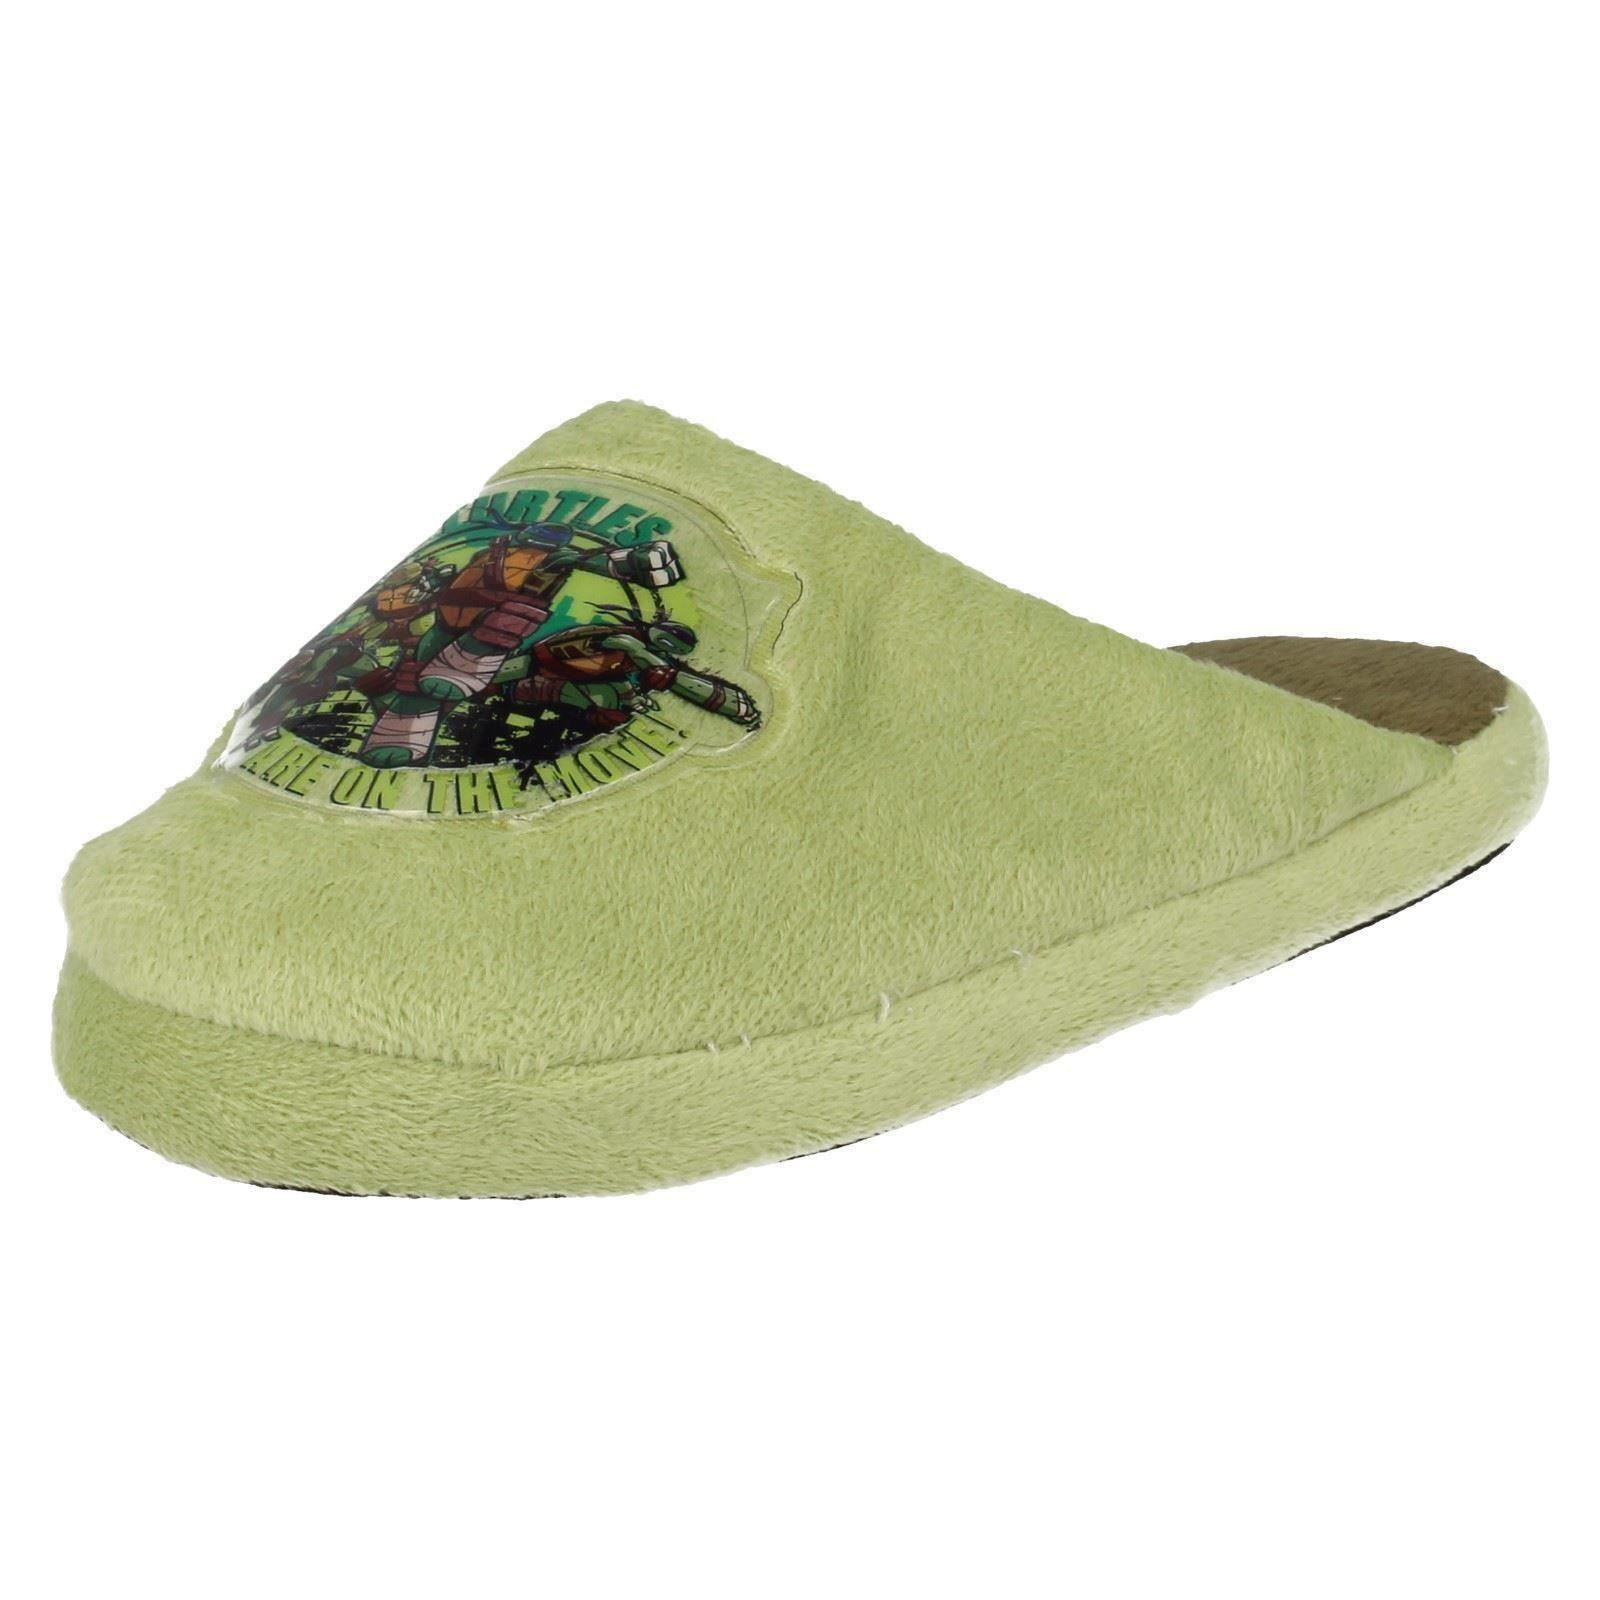 Chicos punto en zapatillas de Teenage Mutant Ninja Turtles